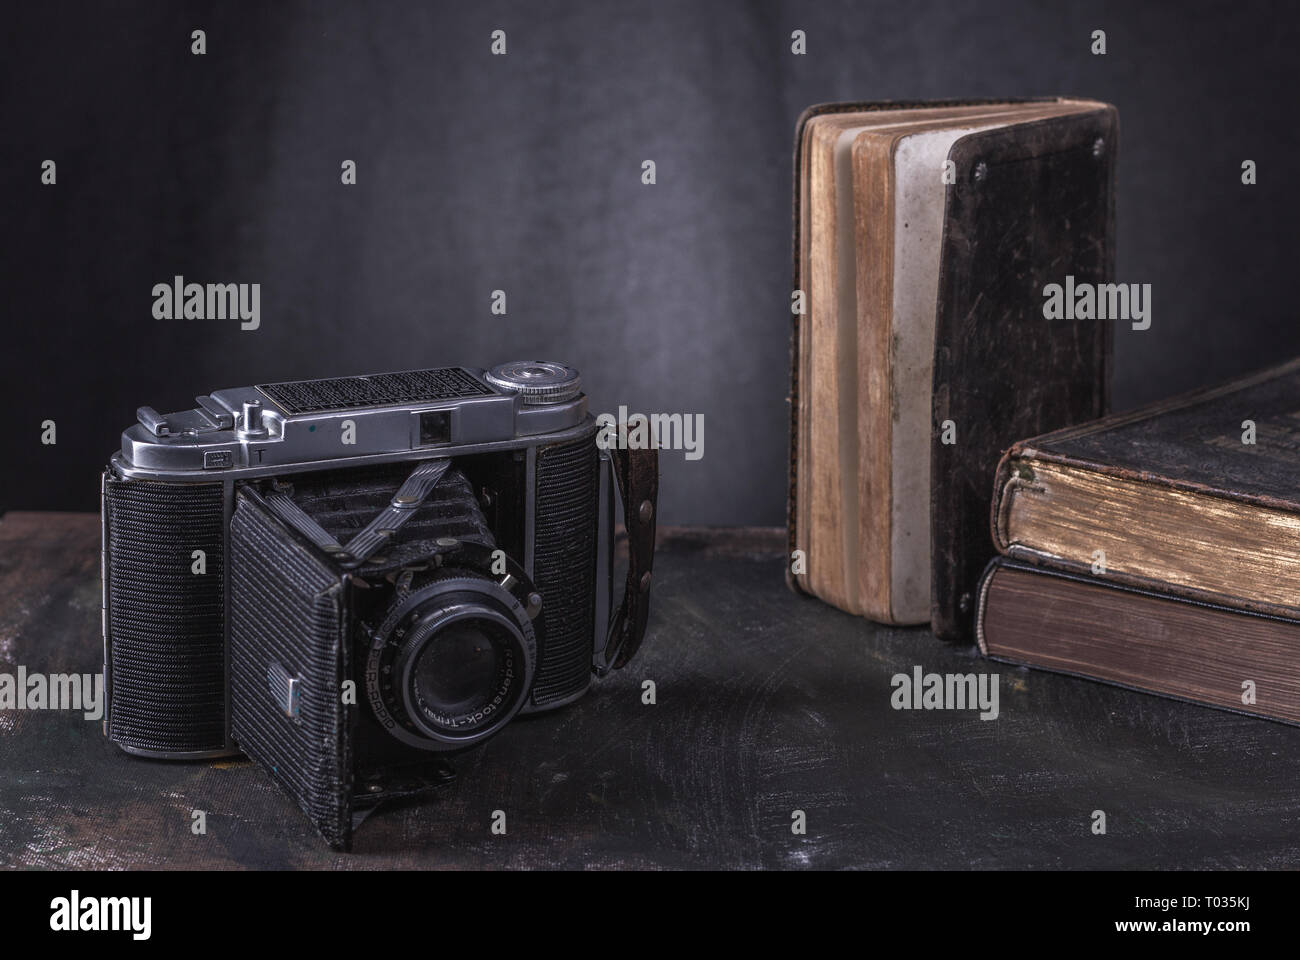 A historic camera with three old books on a black background in a room by the wall. Stock Photo